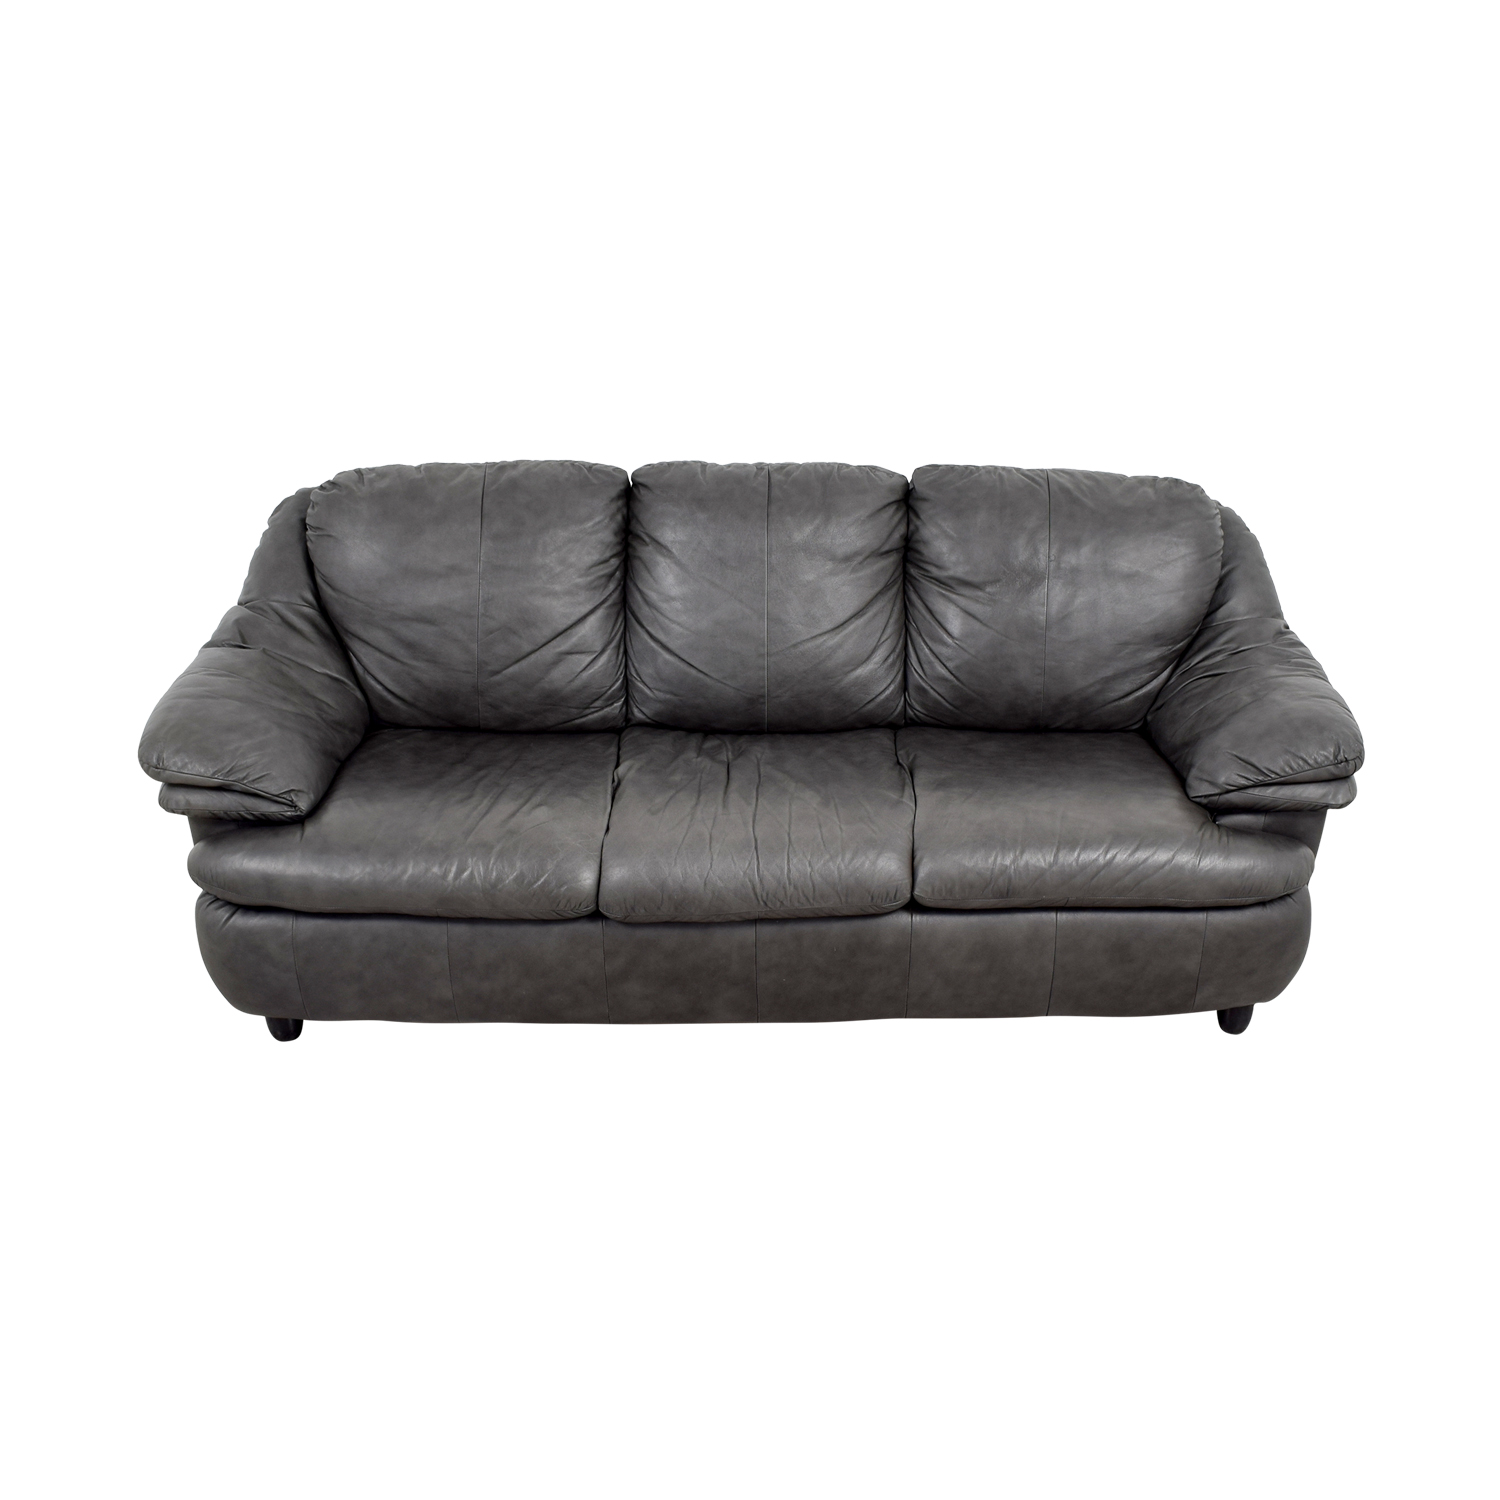 Jennifer Leather Jennifer Leather Natale Grey Three-Cushion Sofa price